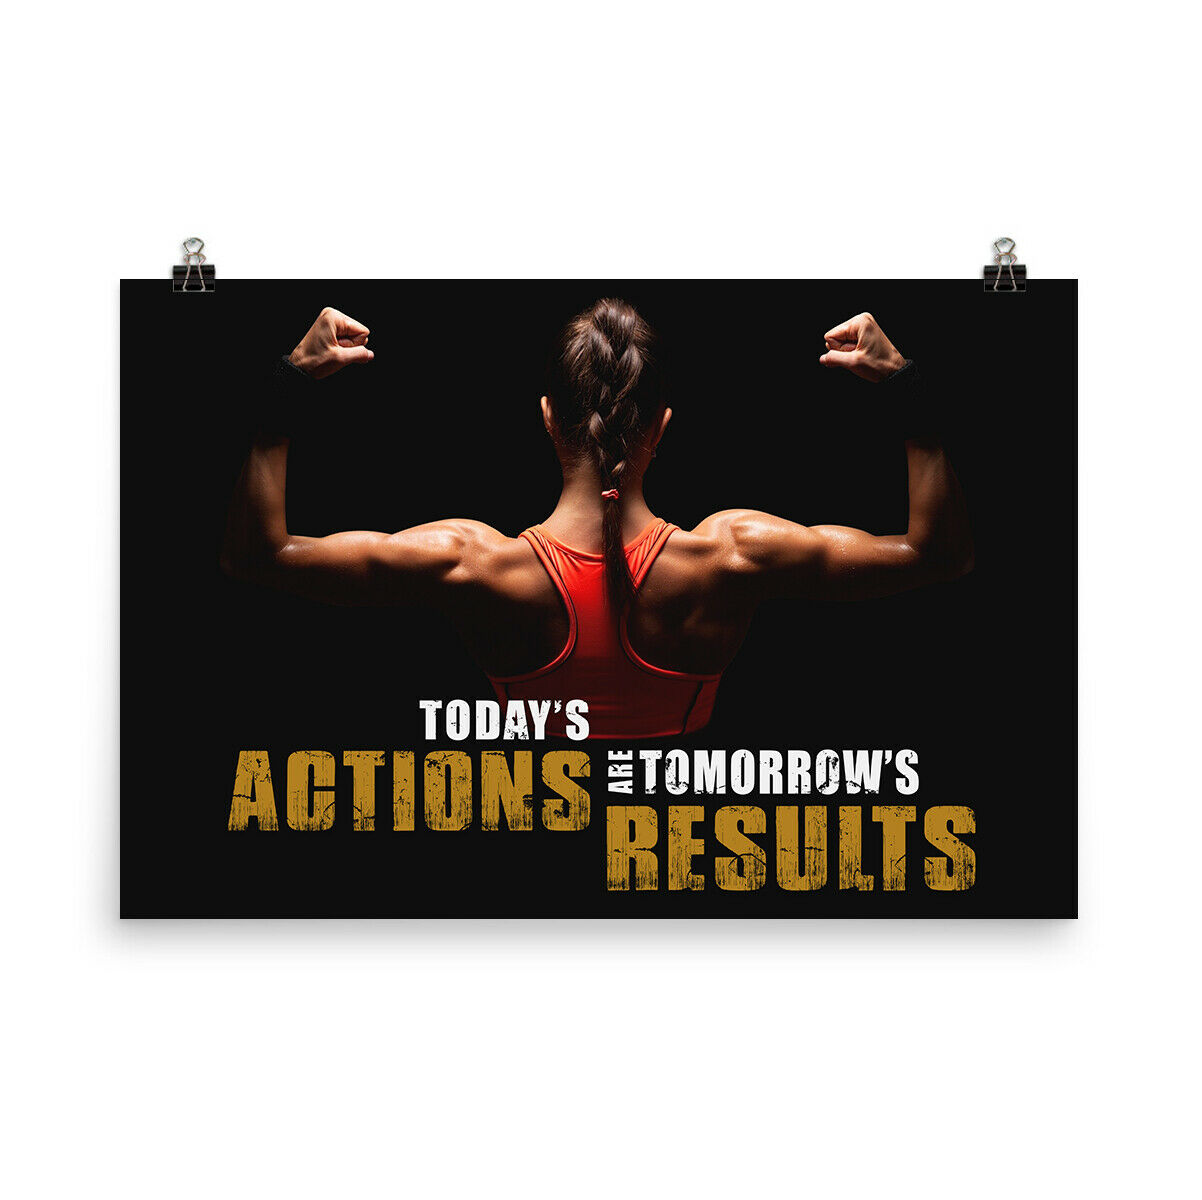 Workout Gym Fitness Quotes Poster Motivational Inspiration Poster Wall Art Ebay